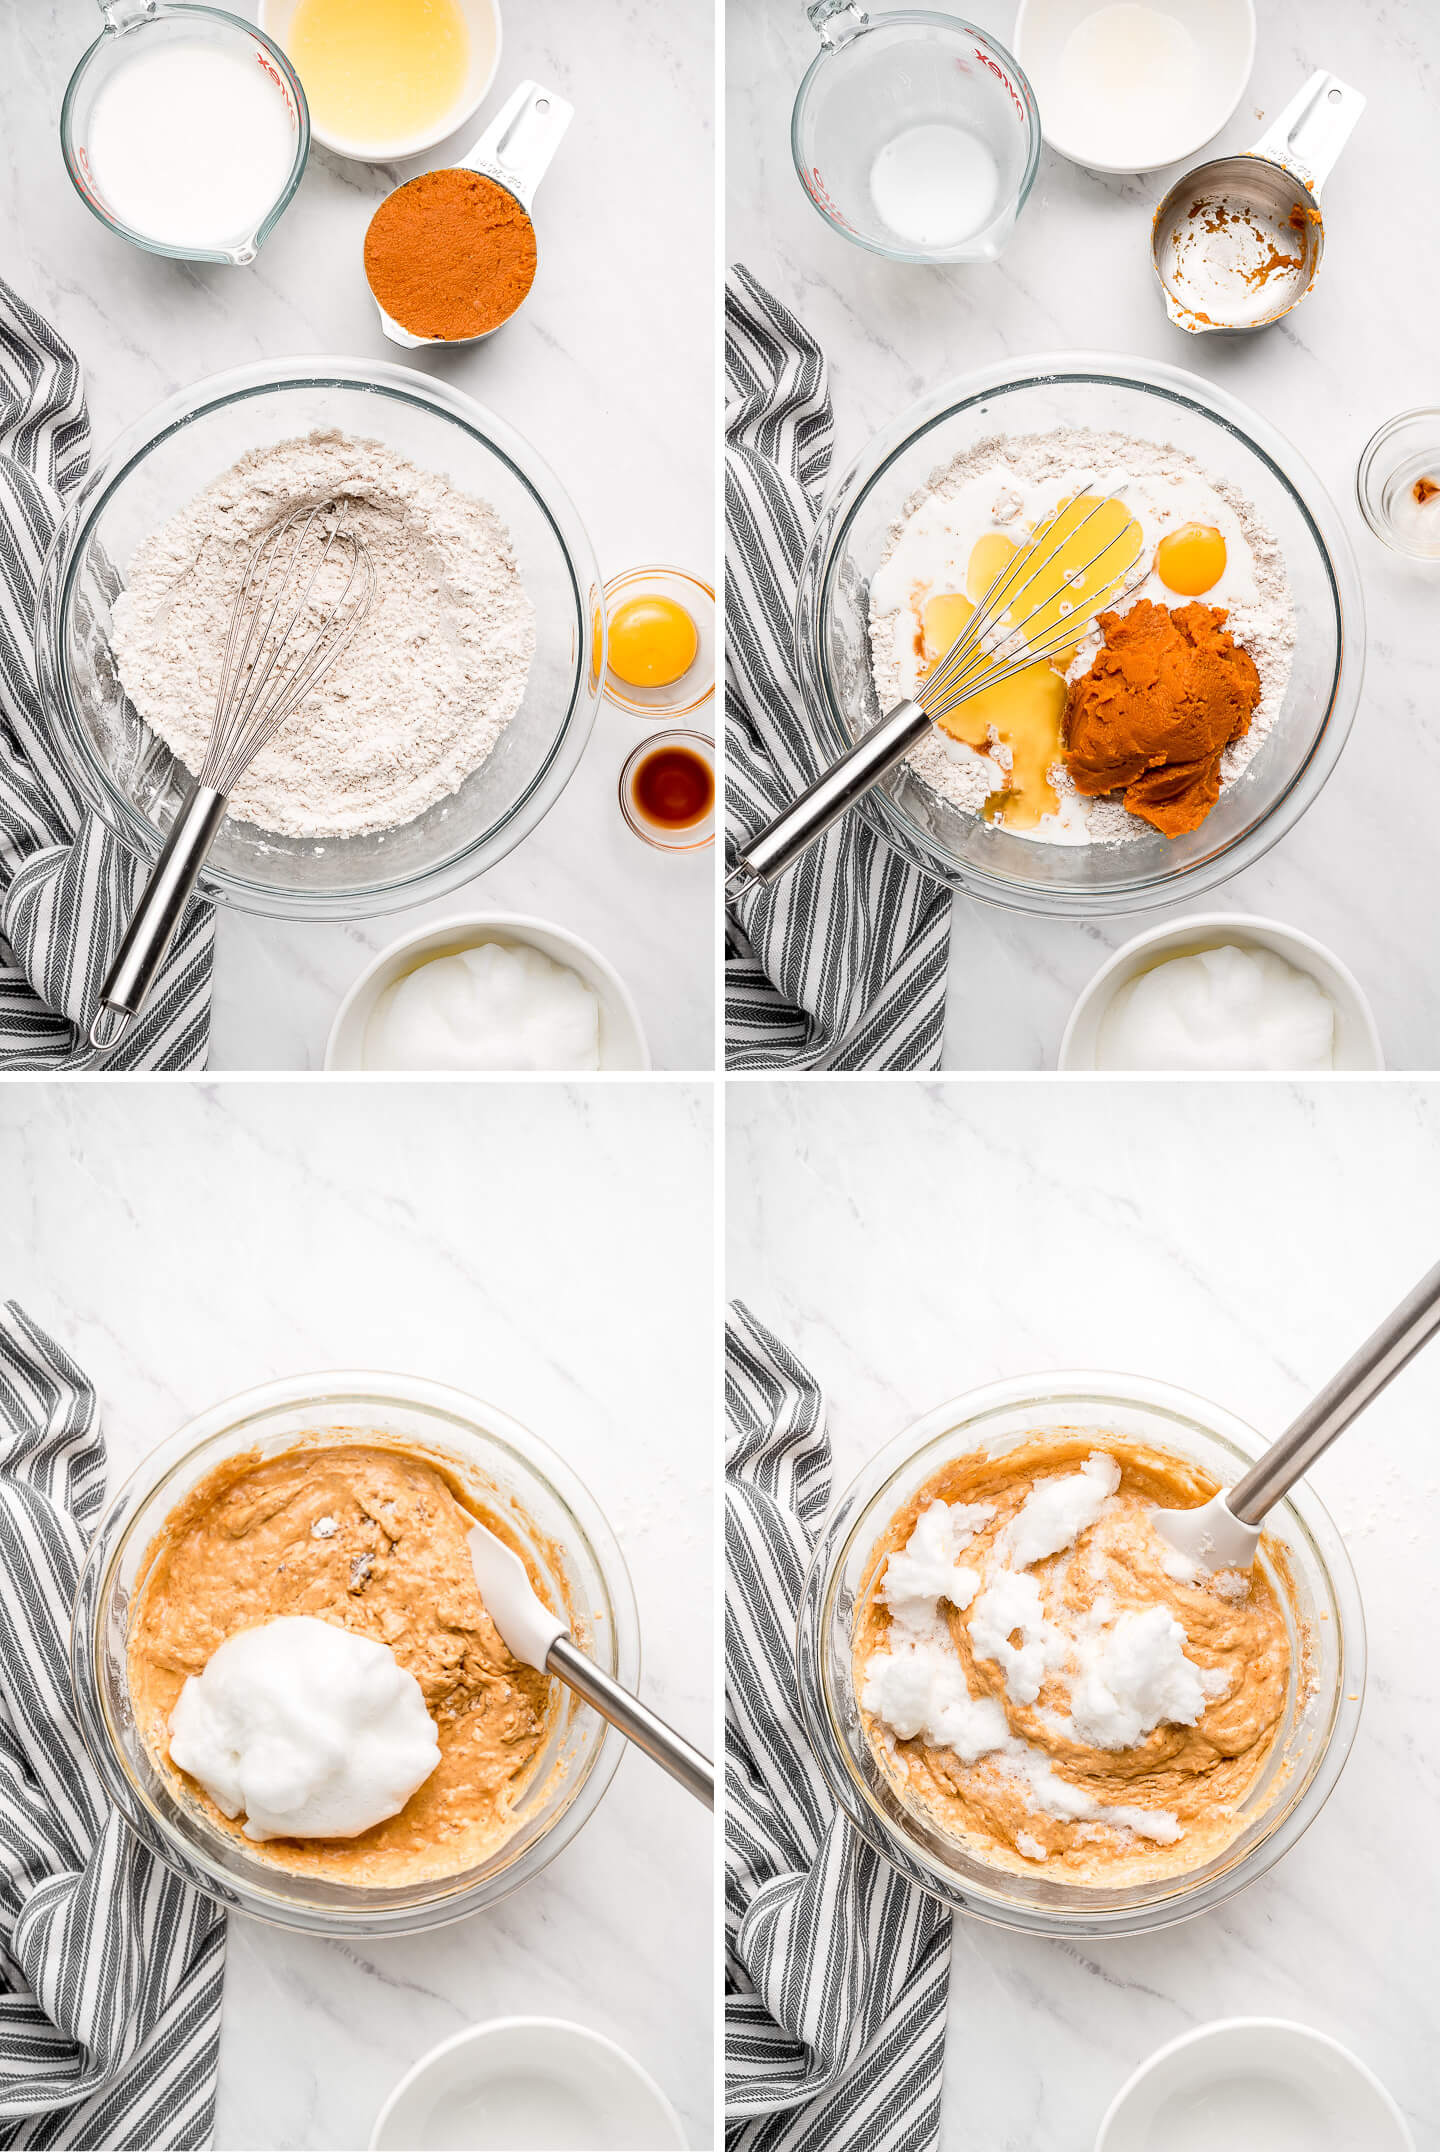 4 photos of mixing together a pumpkin batter and folding in beaten egg whites.